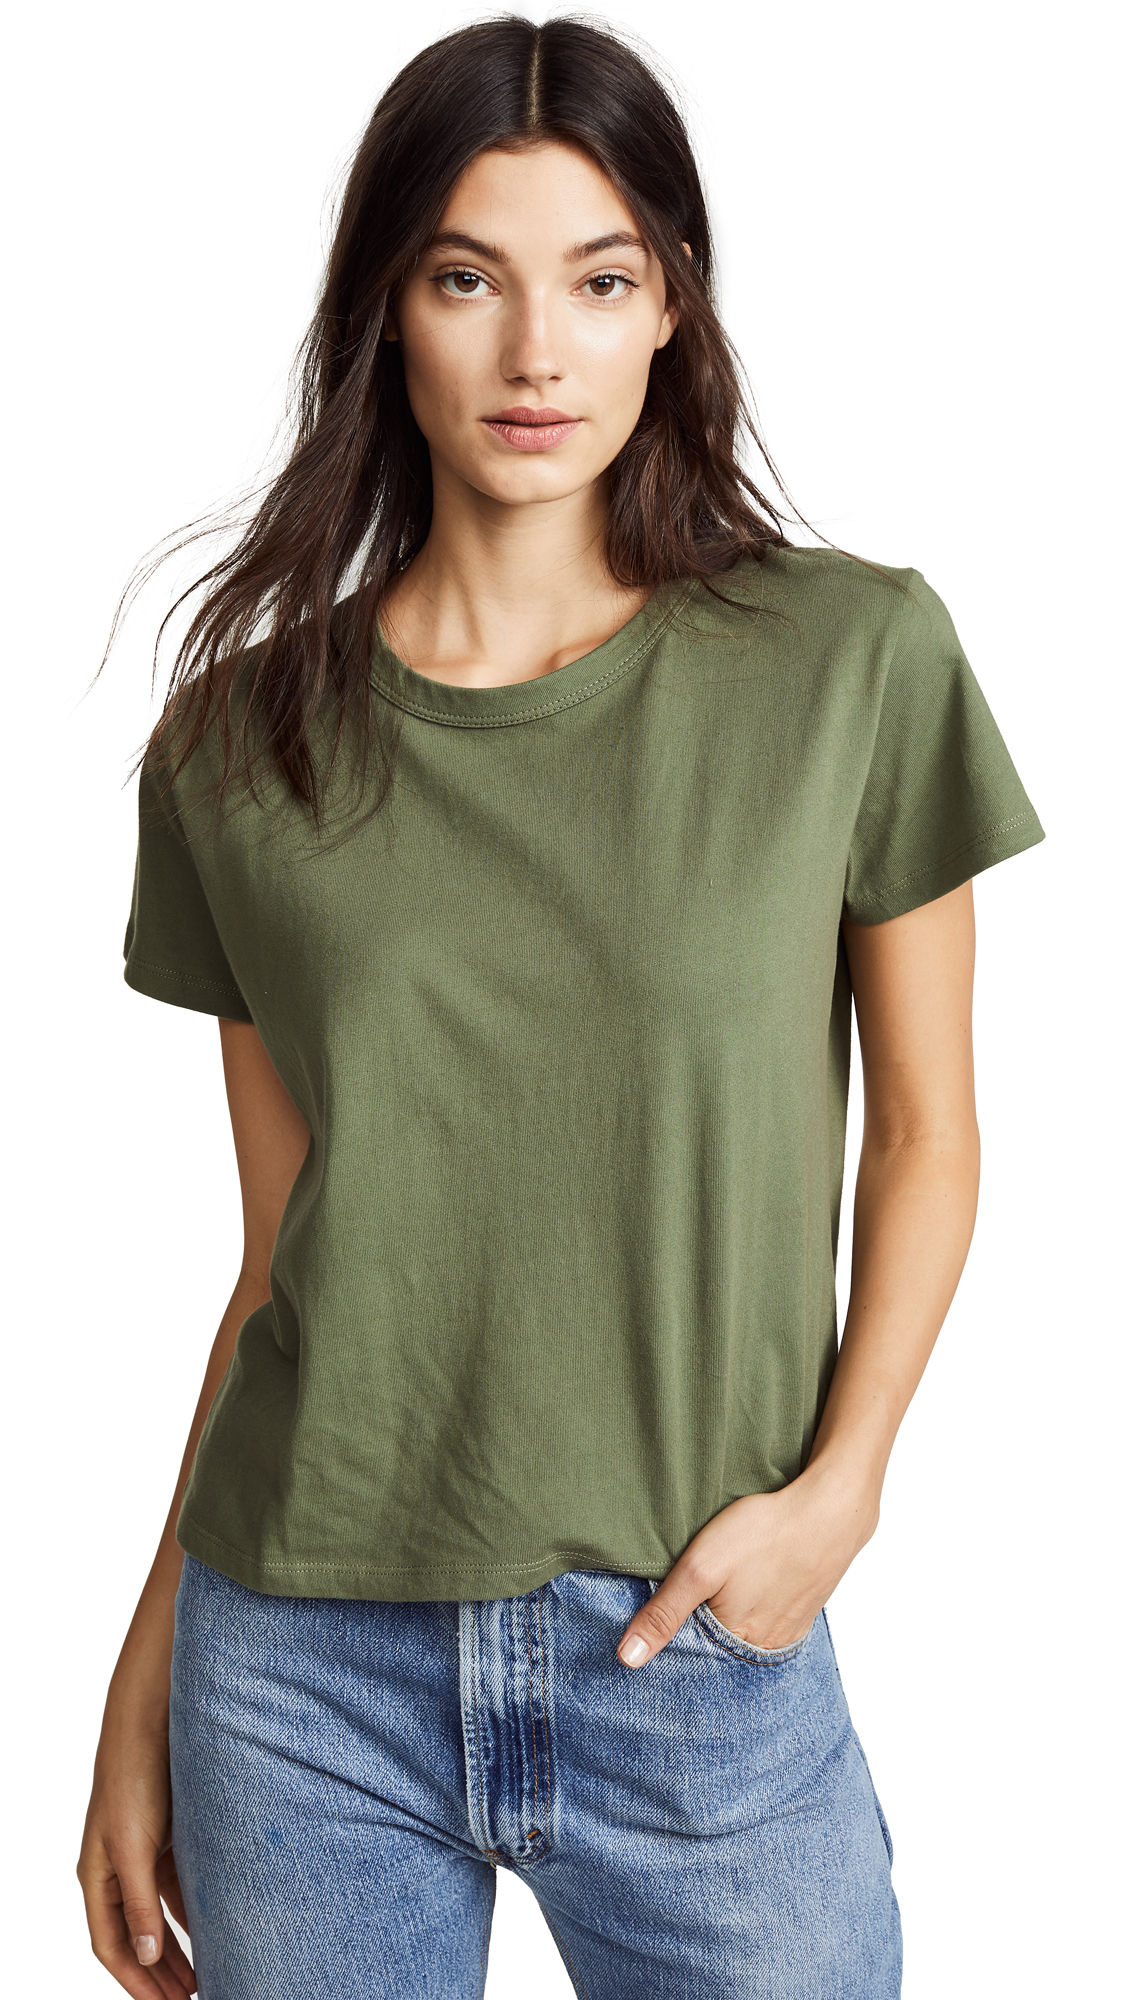 LIANA CLOTHING The Margo Standard Tee in Forest